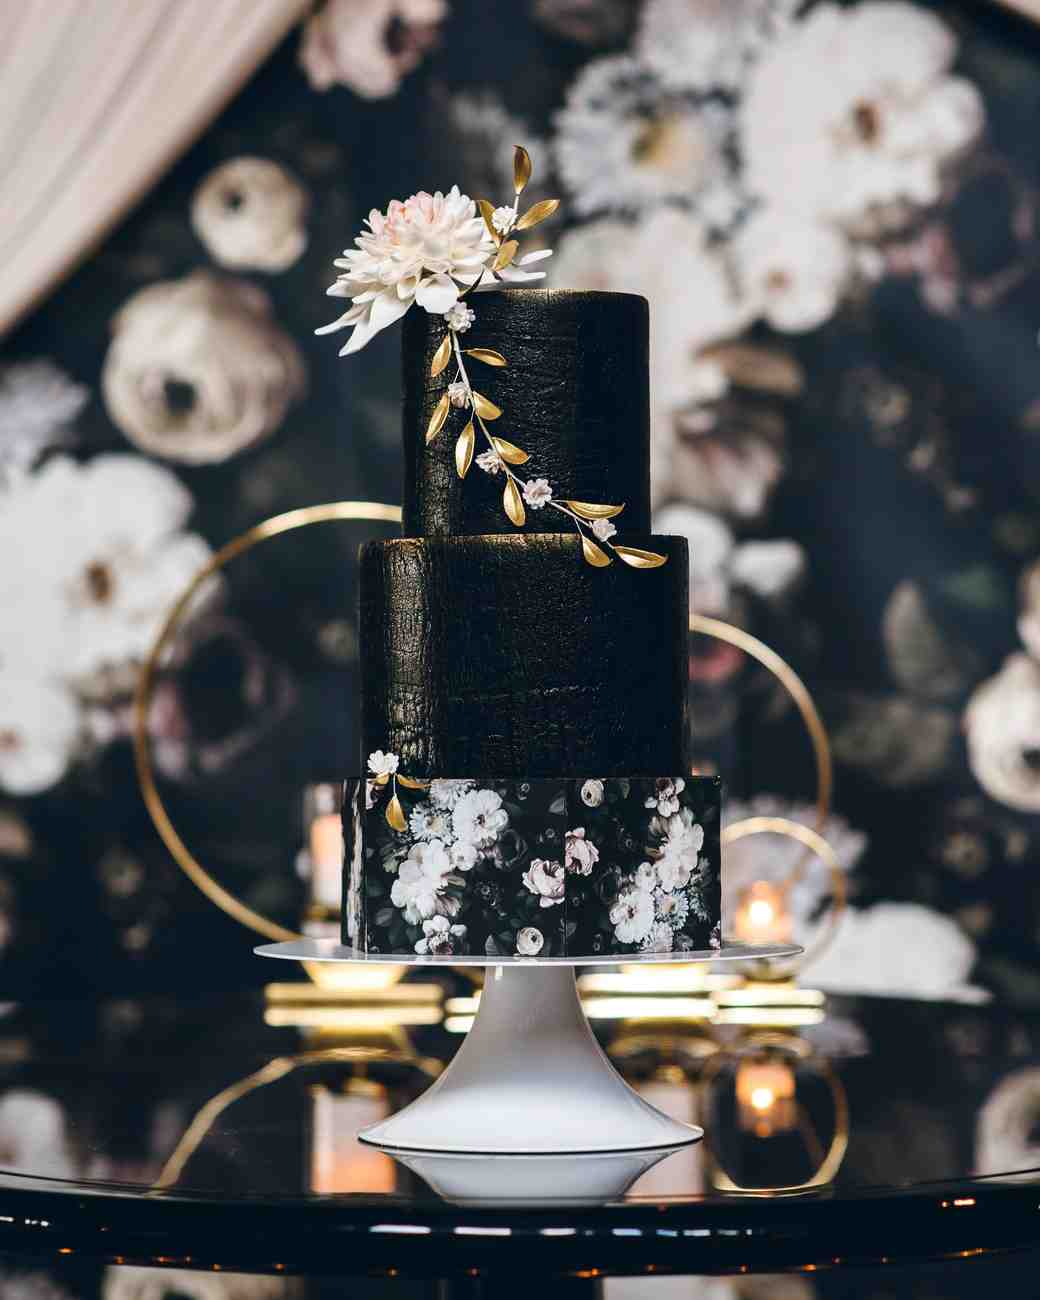 32 Amazing Wedding Cakes You Have To See To Believe: 21 Beautiful Black Wedding Cakes For The Nontraditional